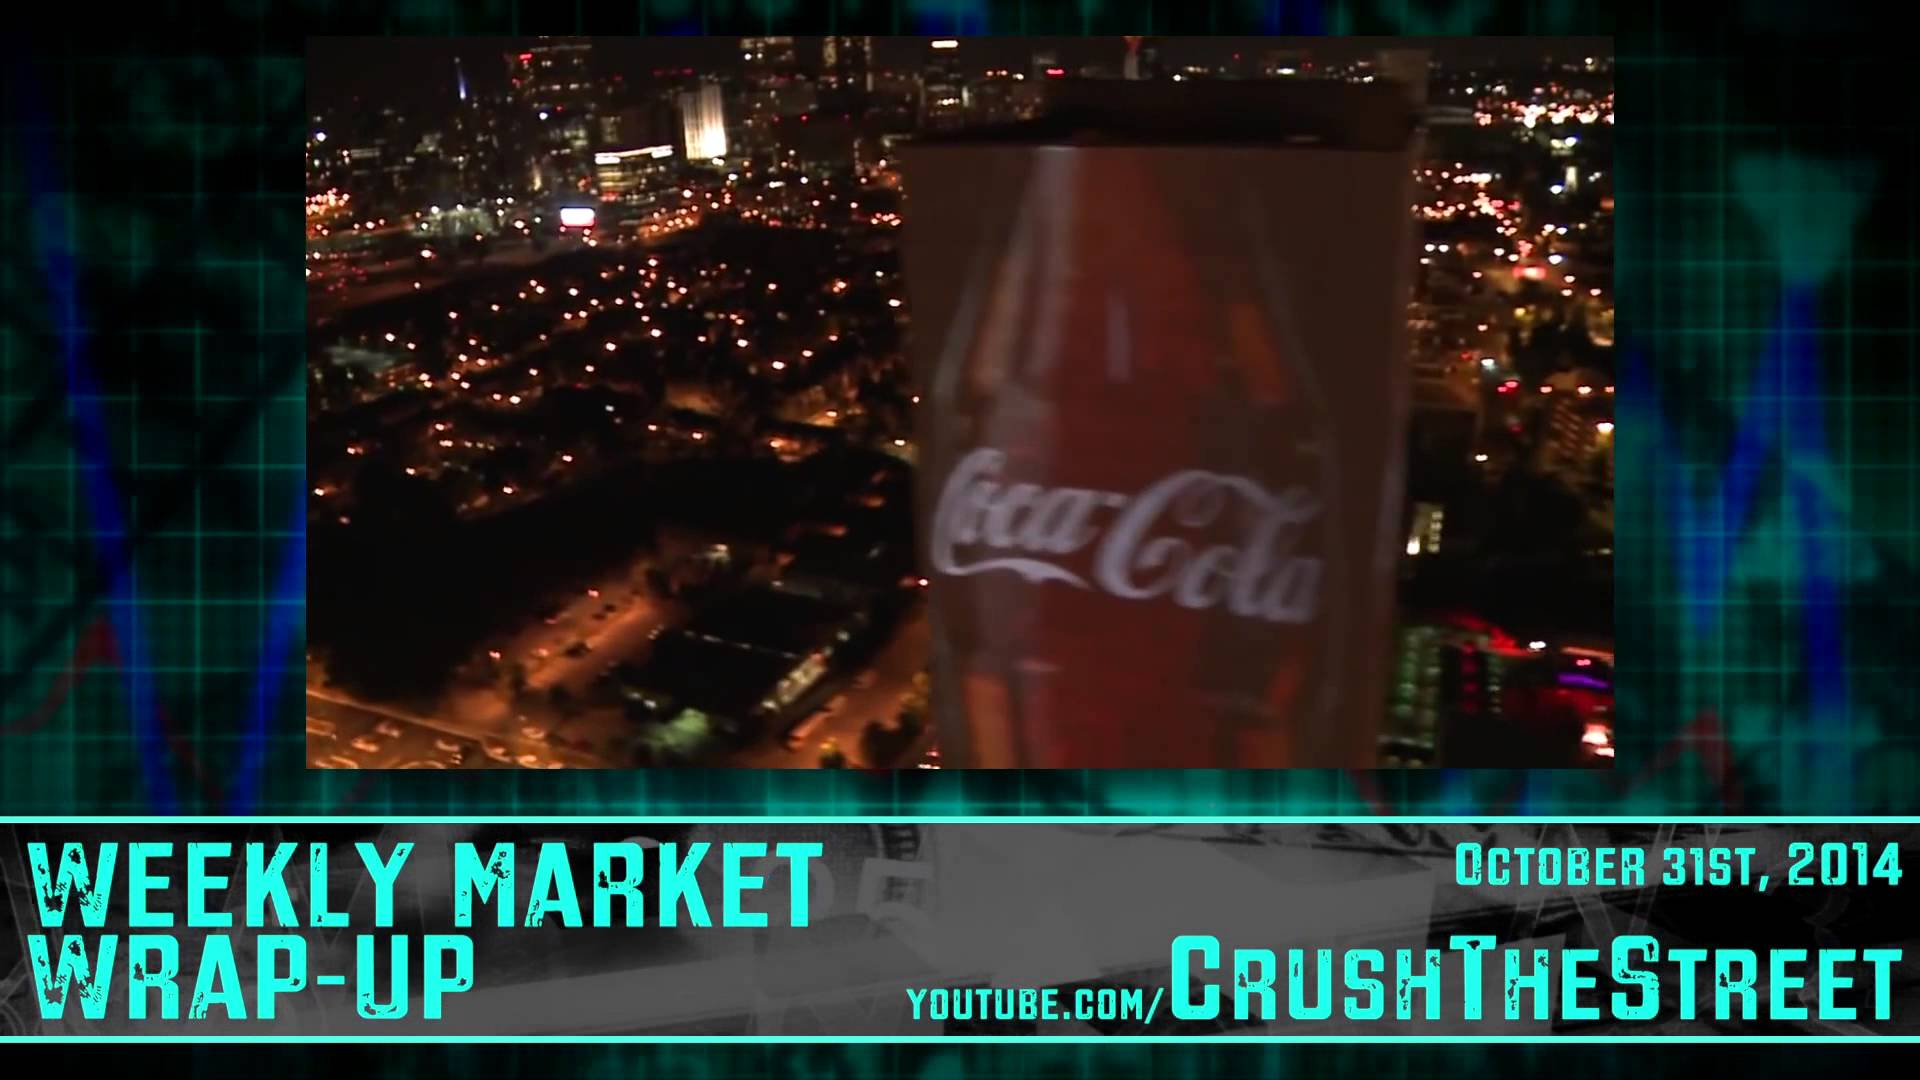 The Coca-Cola Buyout?